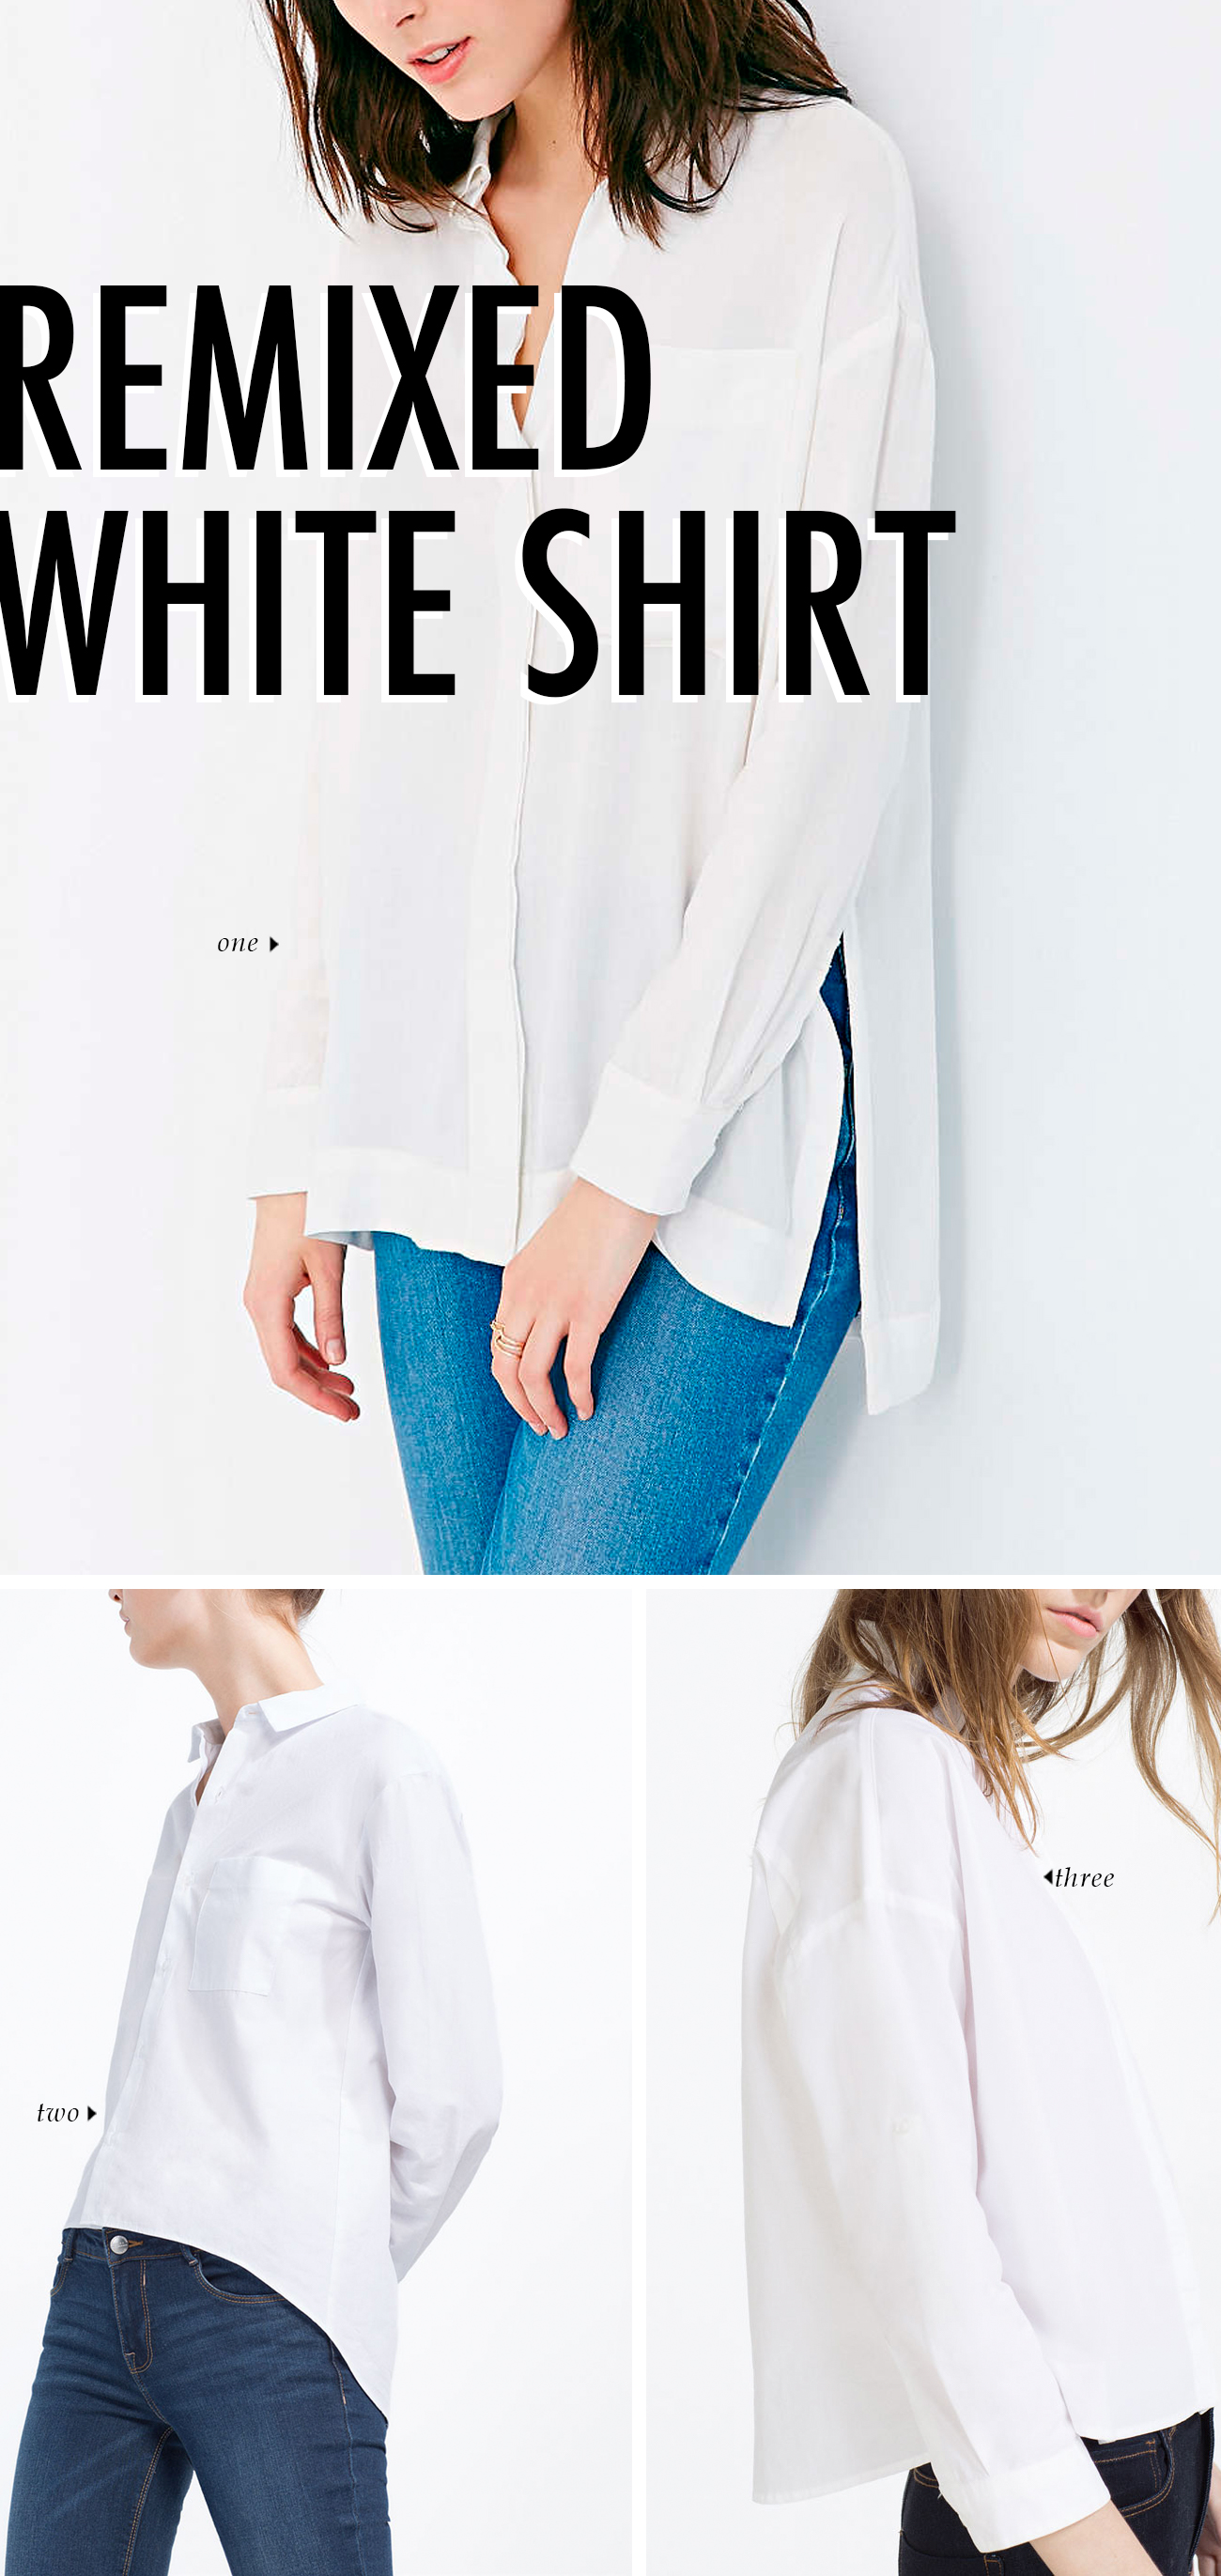 spring summer 2016 clothing trends - WHITE SHIRT REMIXED #trends